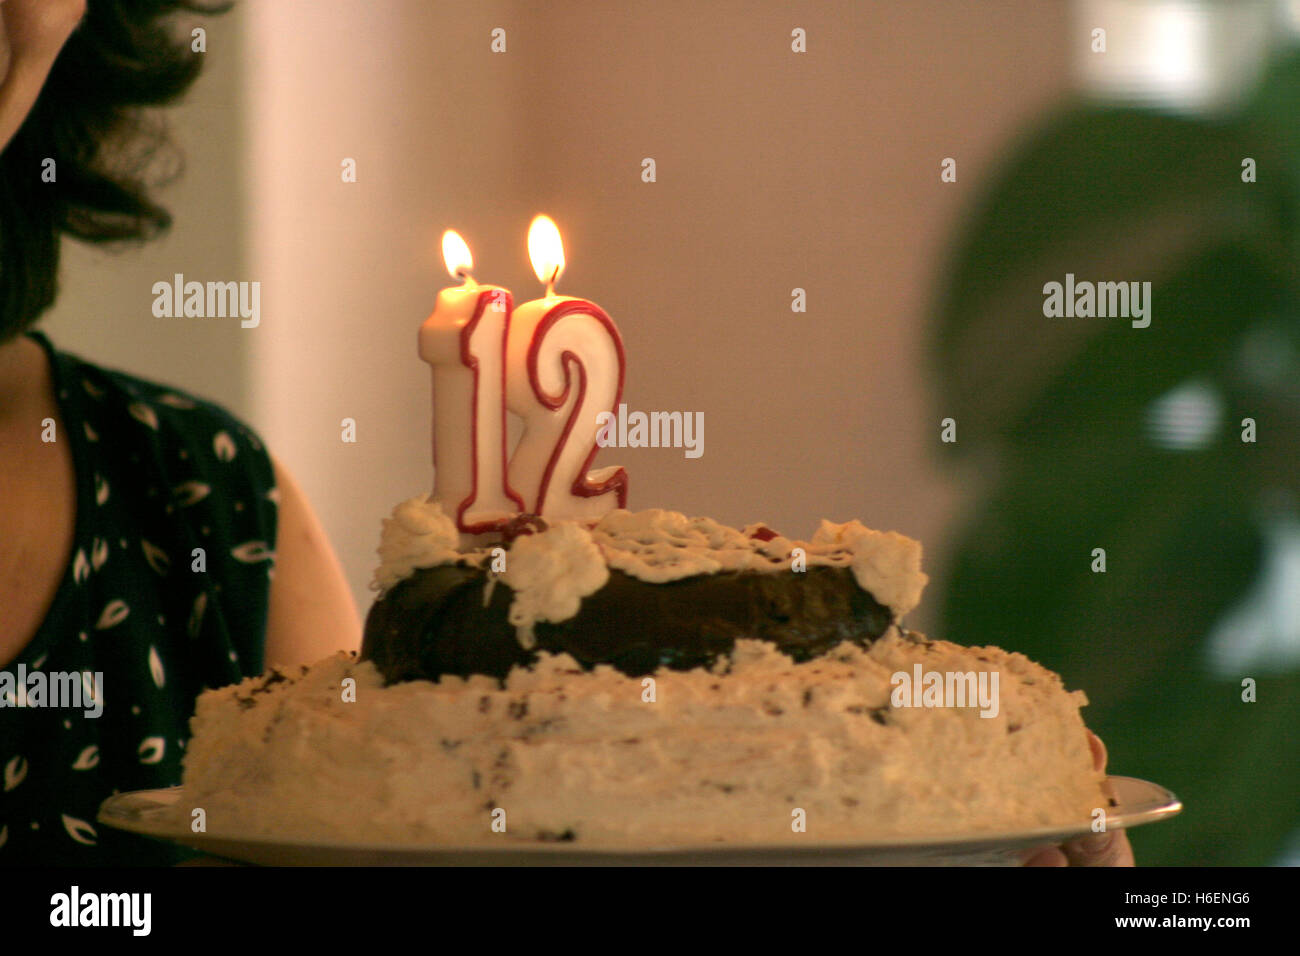 Awesome Birthday Cake With Burning Candles For 12 Years Old Celebration Funny Birthday Cards Online Elaedamsfinfo